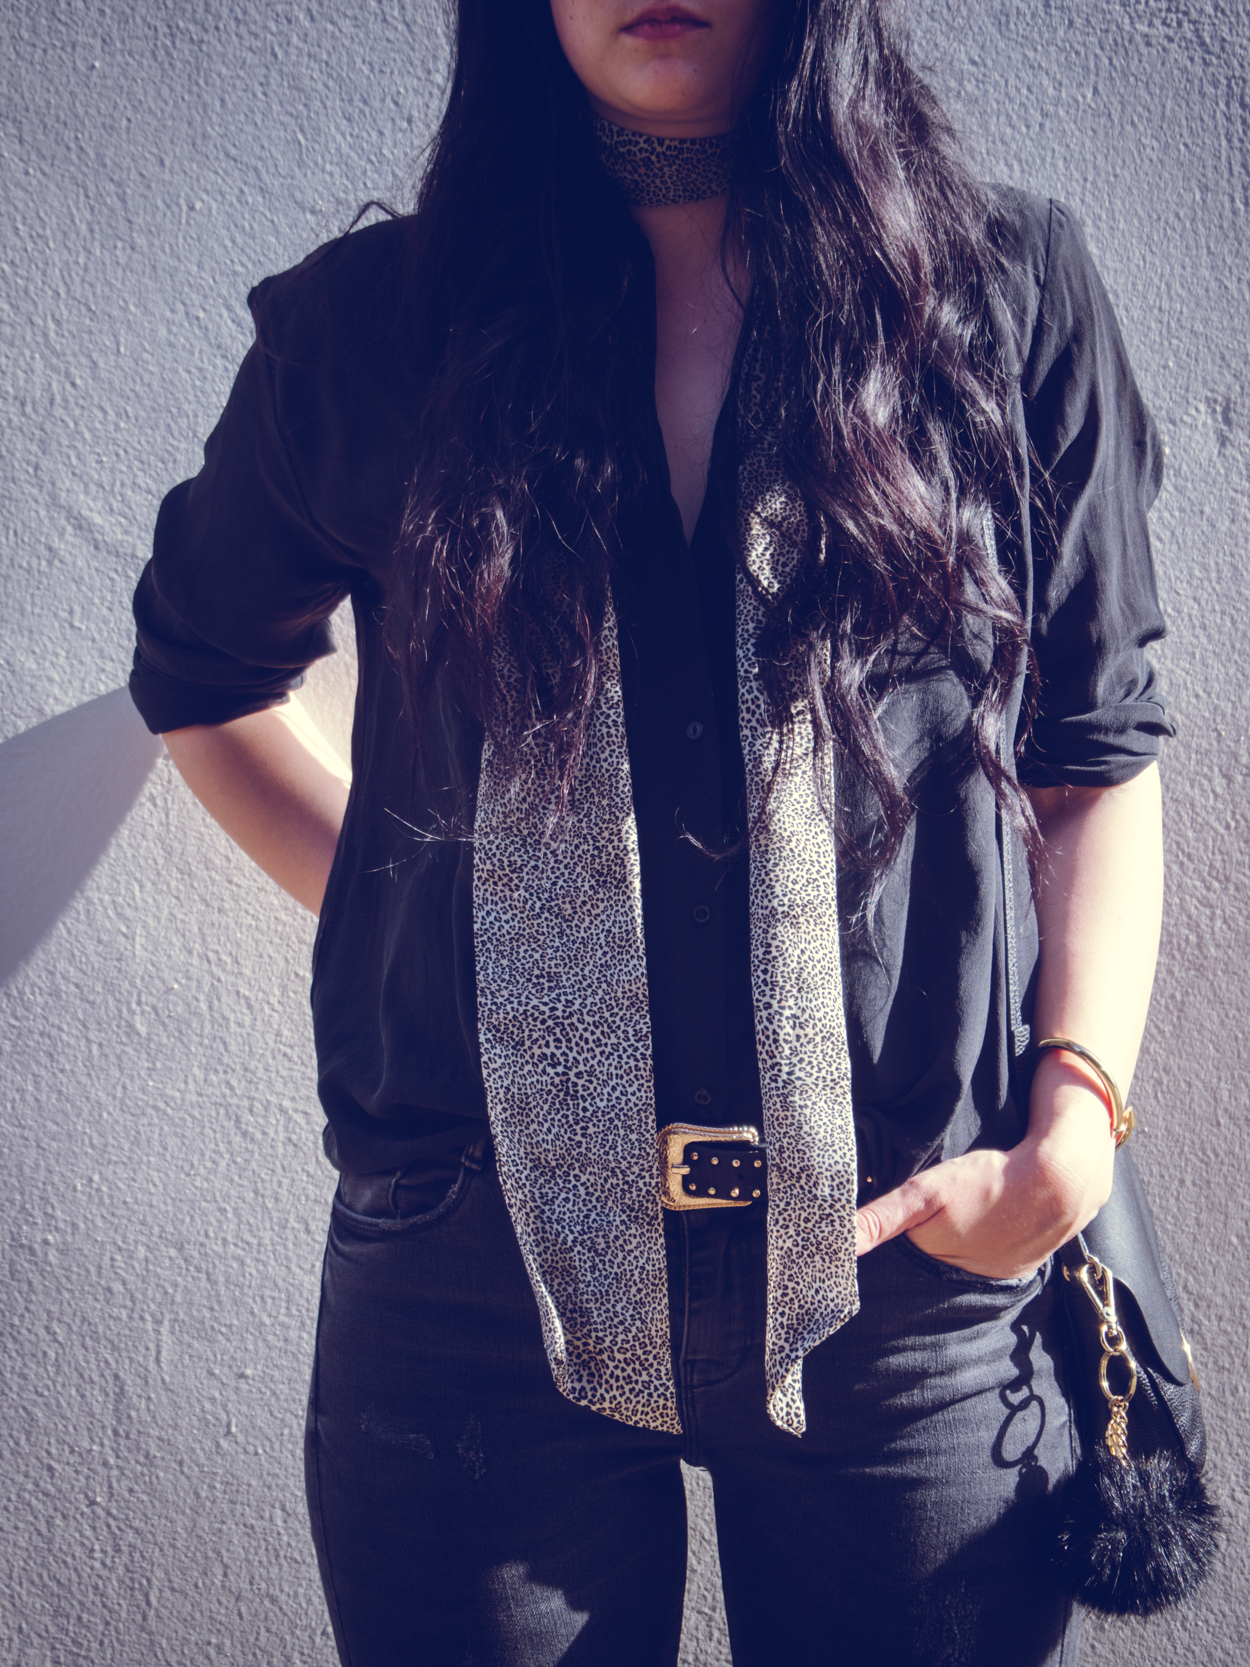 LEOPARD SKINNY SCARF || THECHICITALIAN || Outfit with one of my favorite trends: the skinny scarf